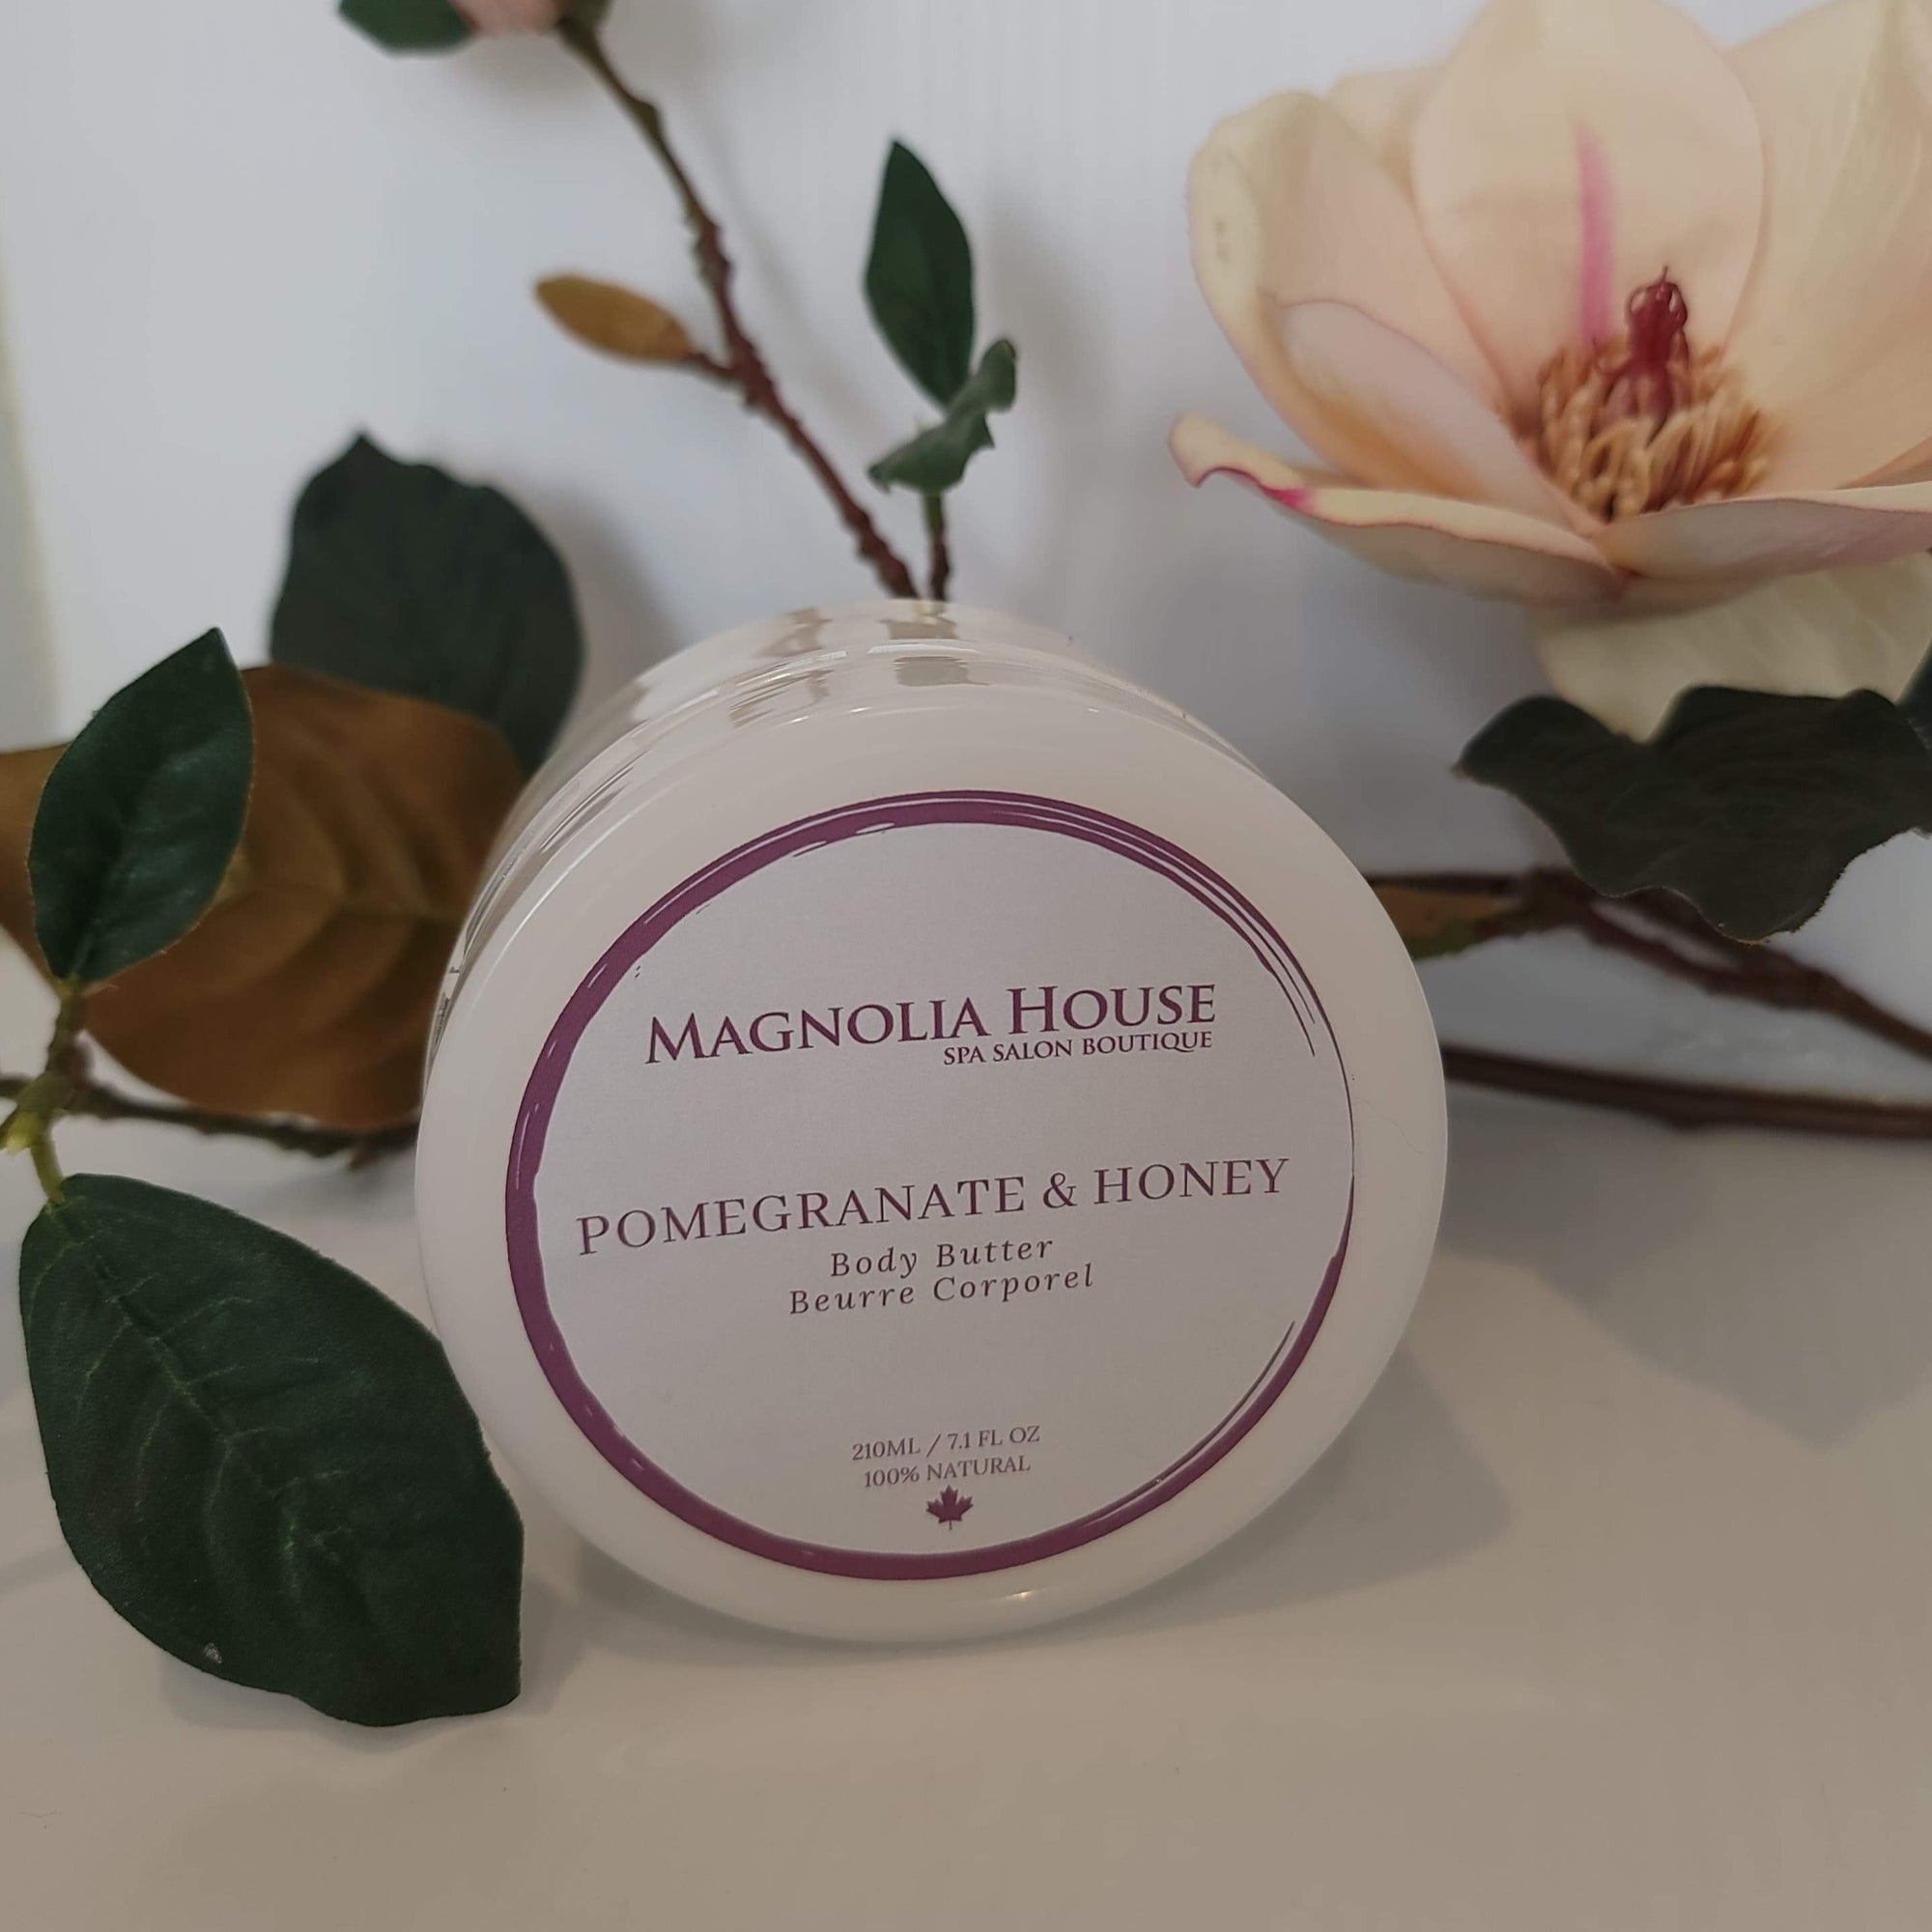 Magnolia House Body Butter